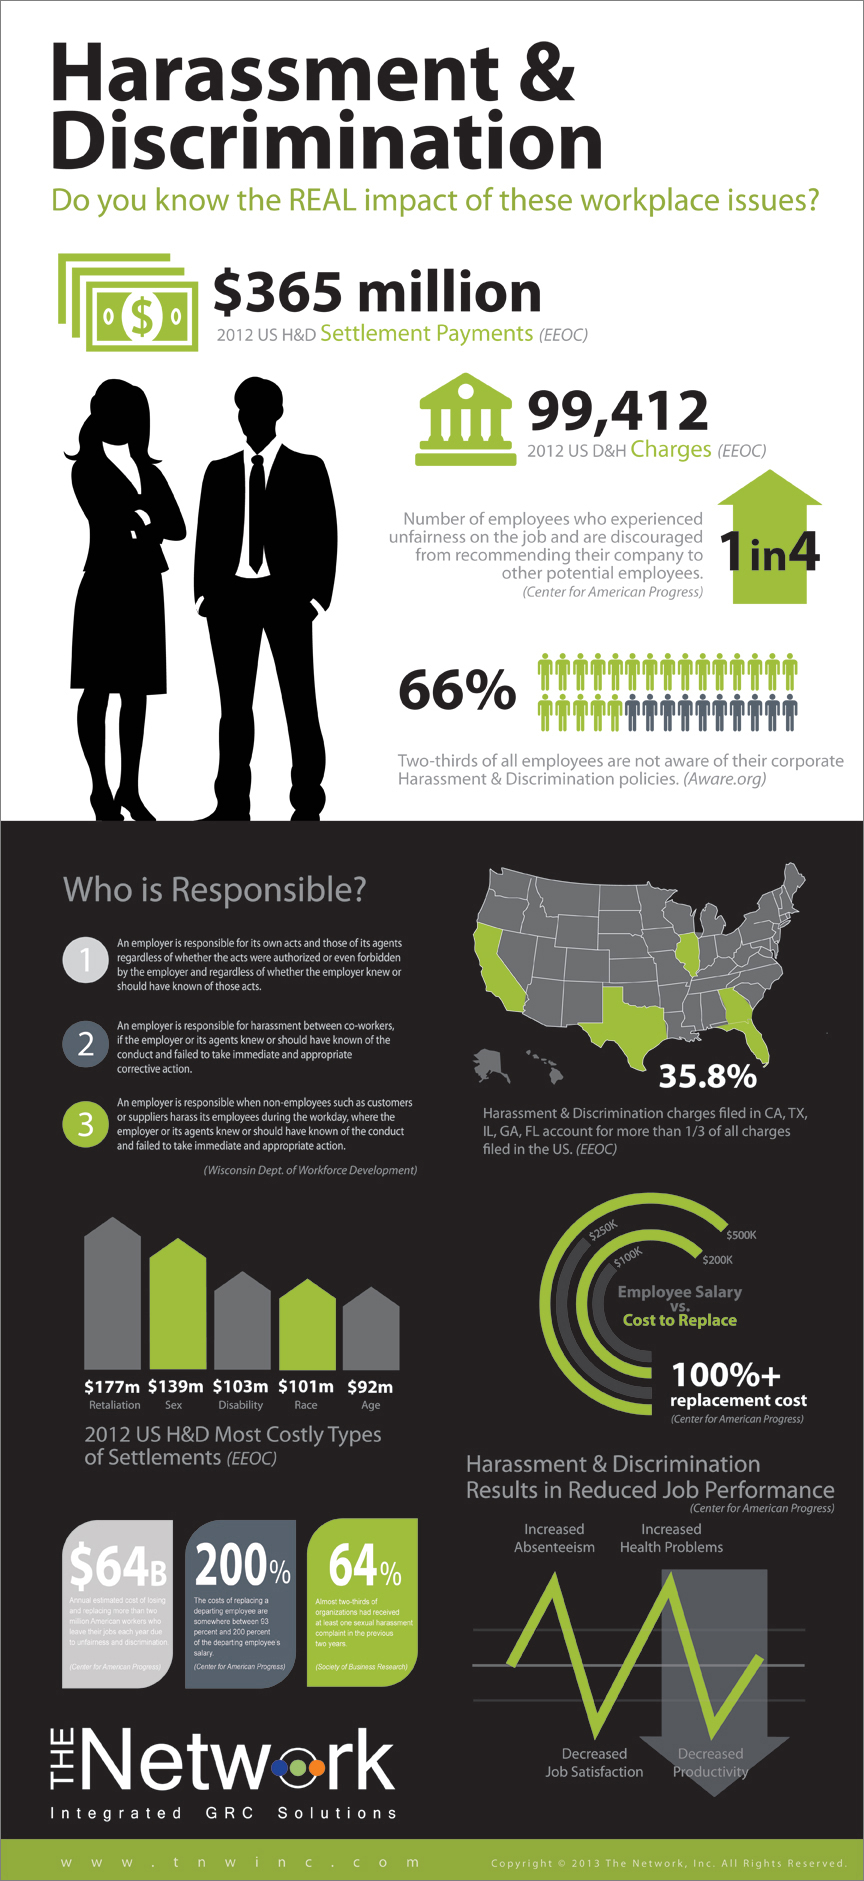 harassment--discrimination-the-real-impact-on-the-workplace_526593bc0fe4d